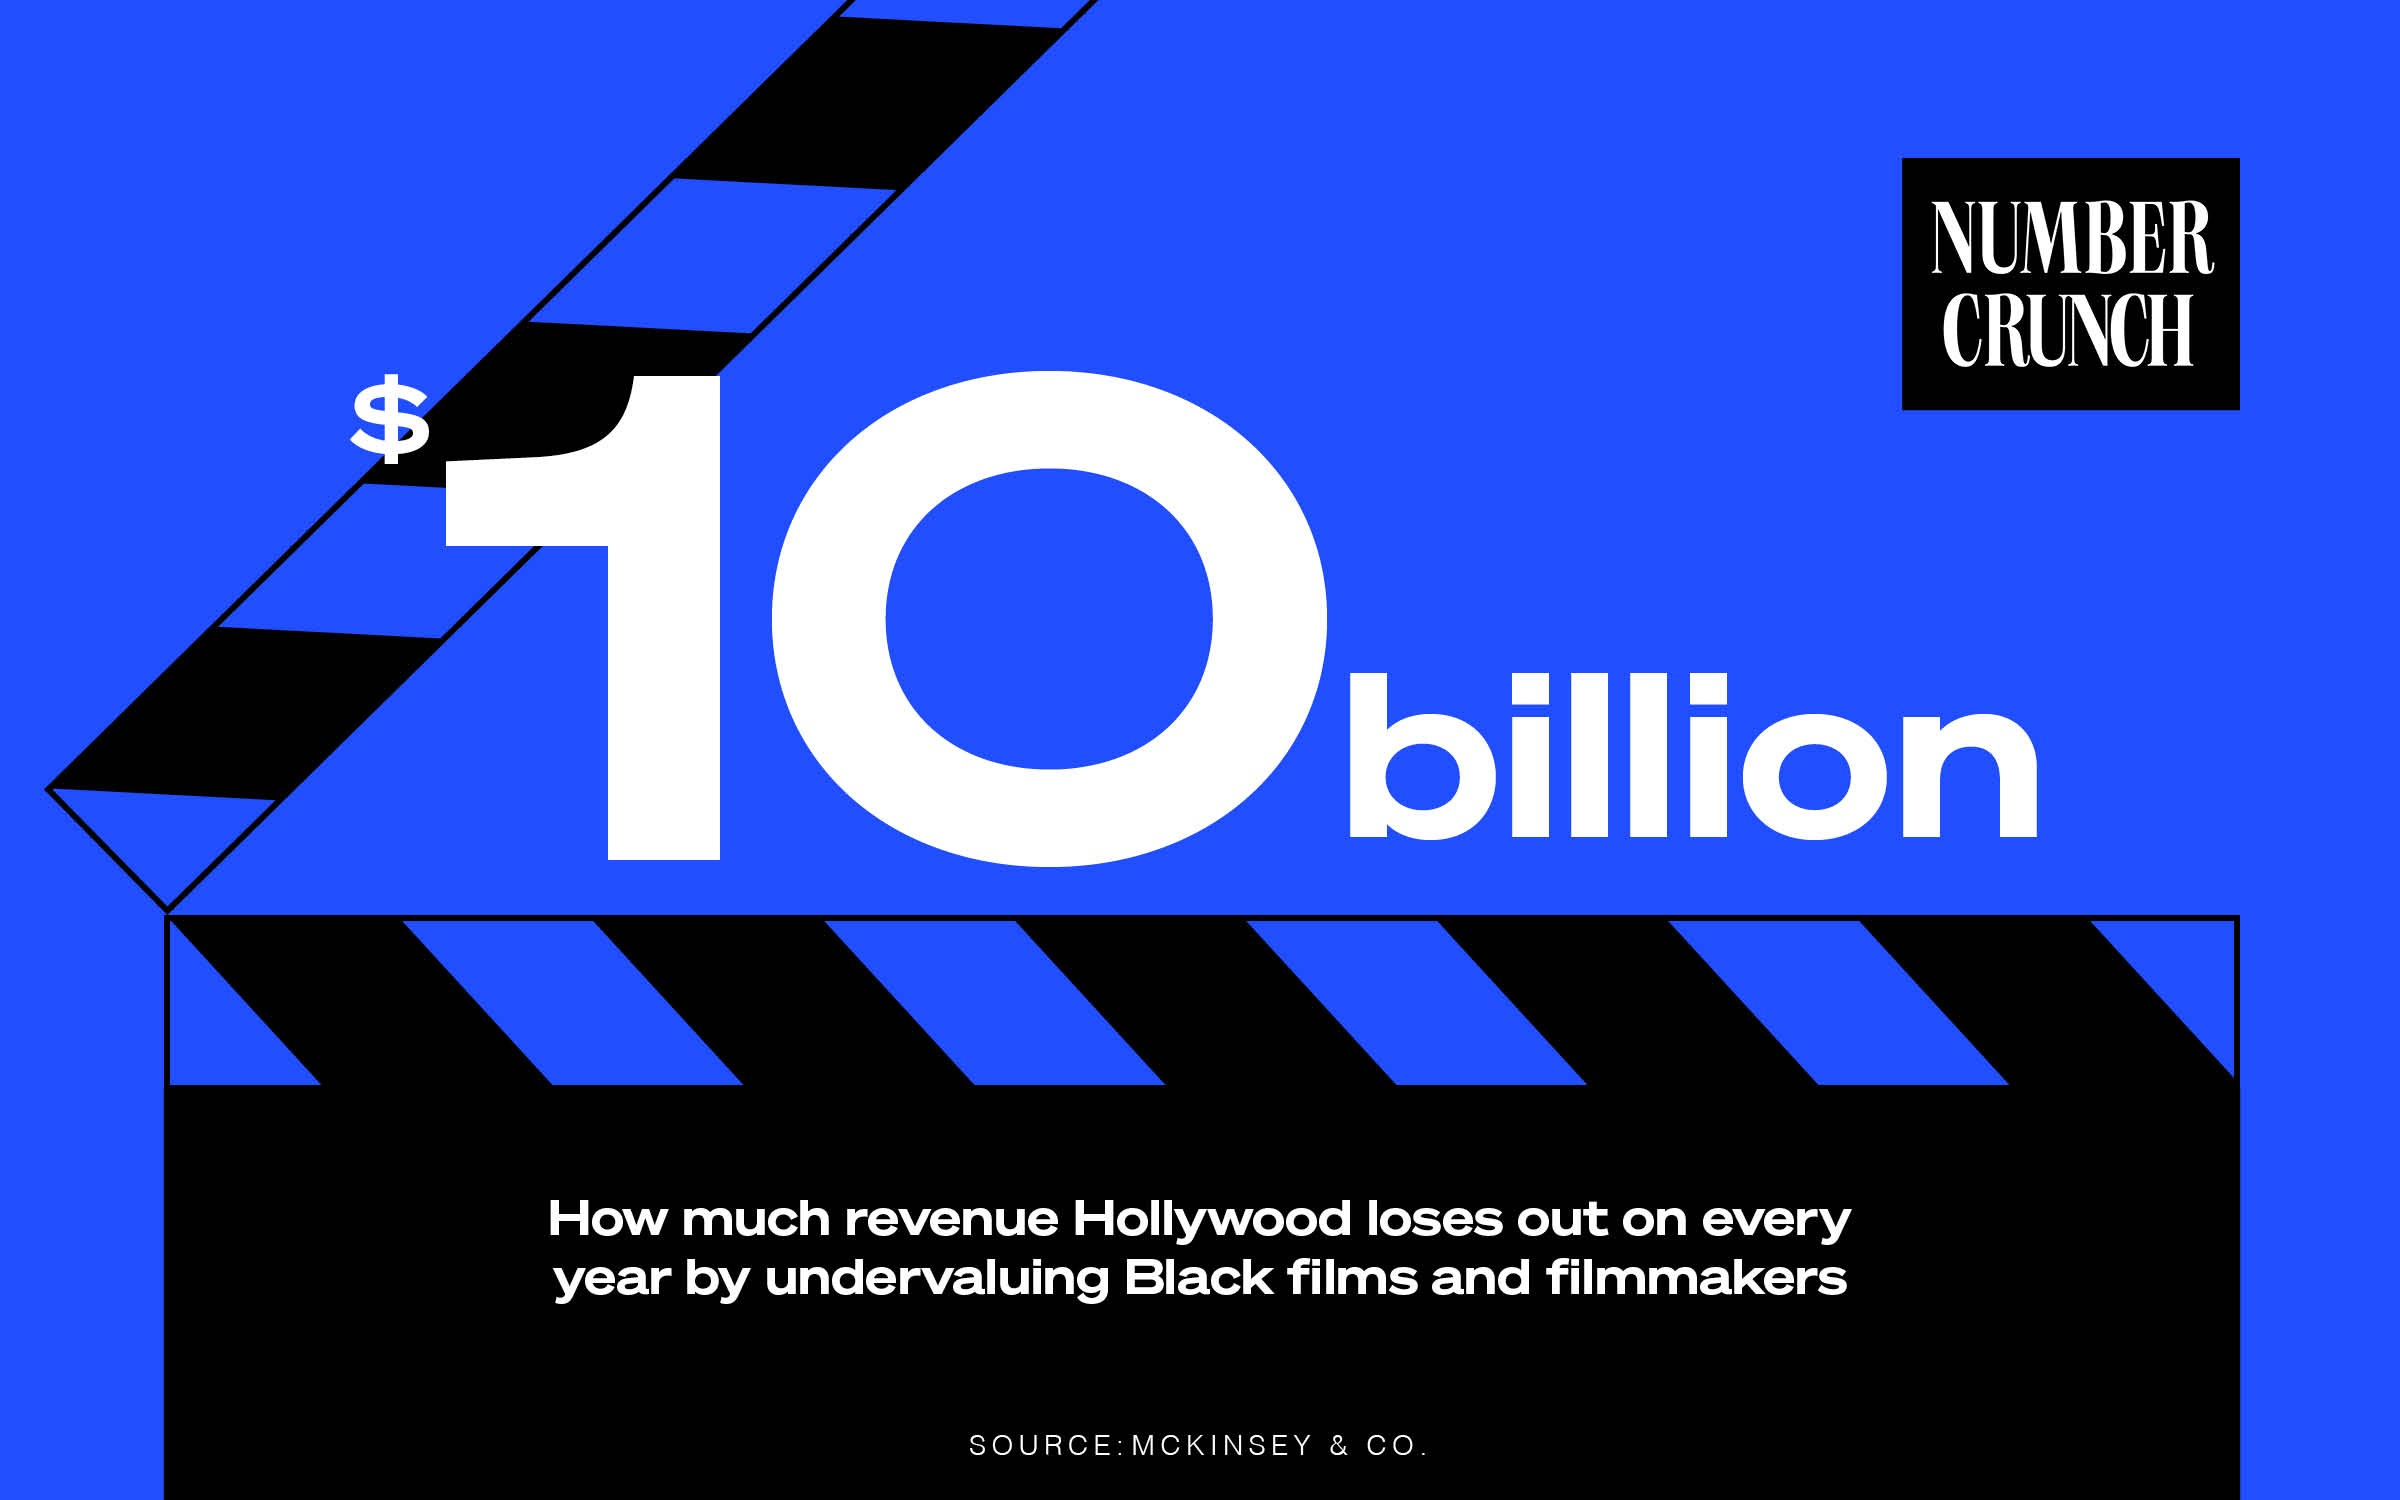 "Number Crunch logo in the top right corner, above the text ""$10 billion: How much revenue Hollywood loses out on every year by undervaluing Black films and filmmakers Source: McKinsey & Co."" Behind the text is a film slate illustration."